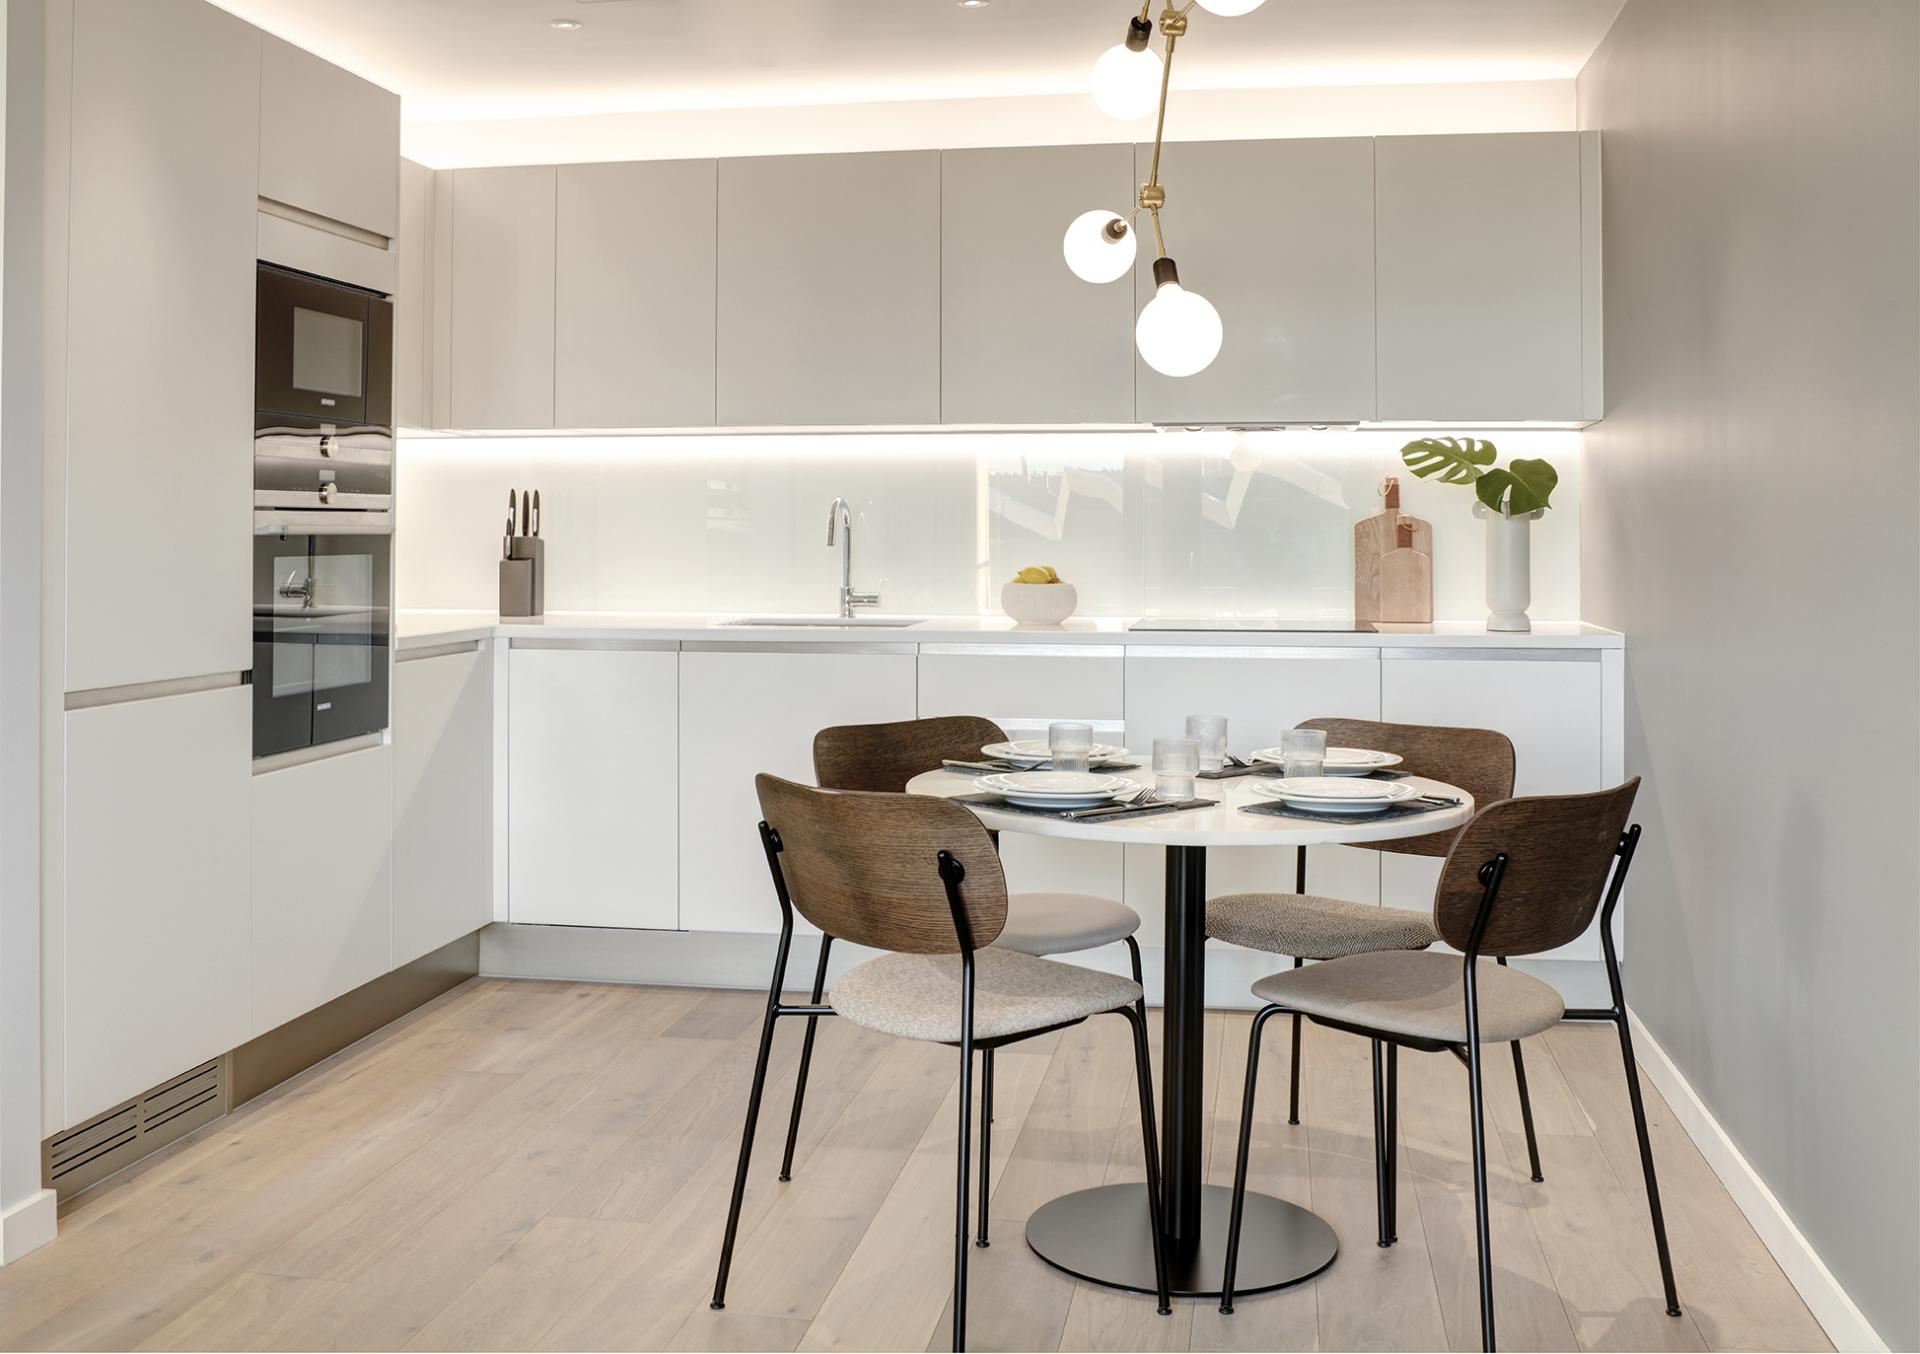 Kitchen diner at STAY Camden Serviced Apartments, Camden, London - Citybase Apartments